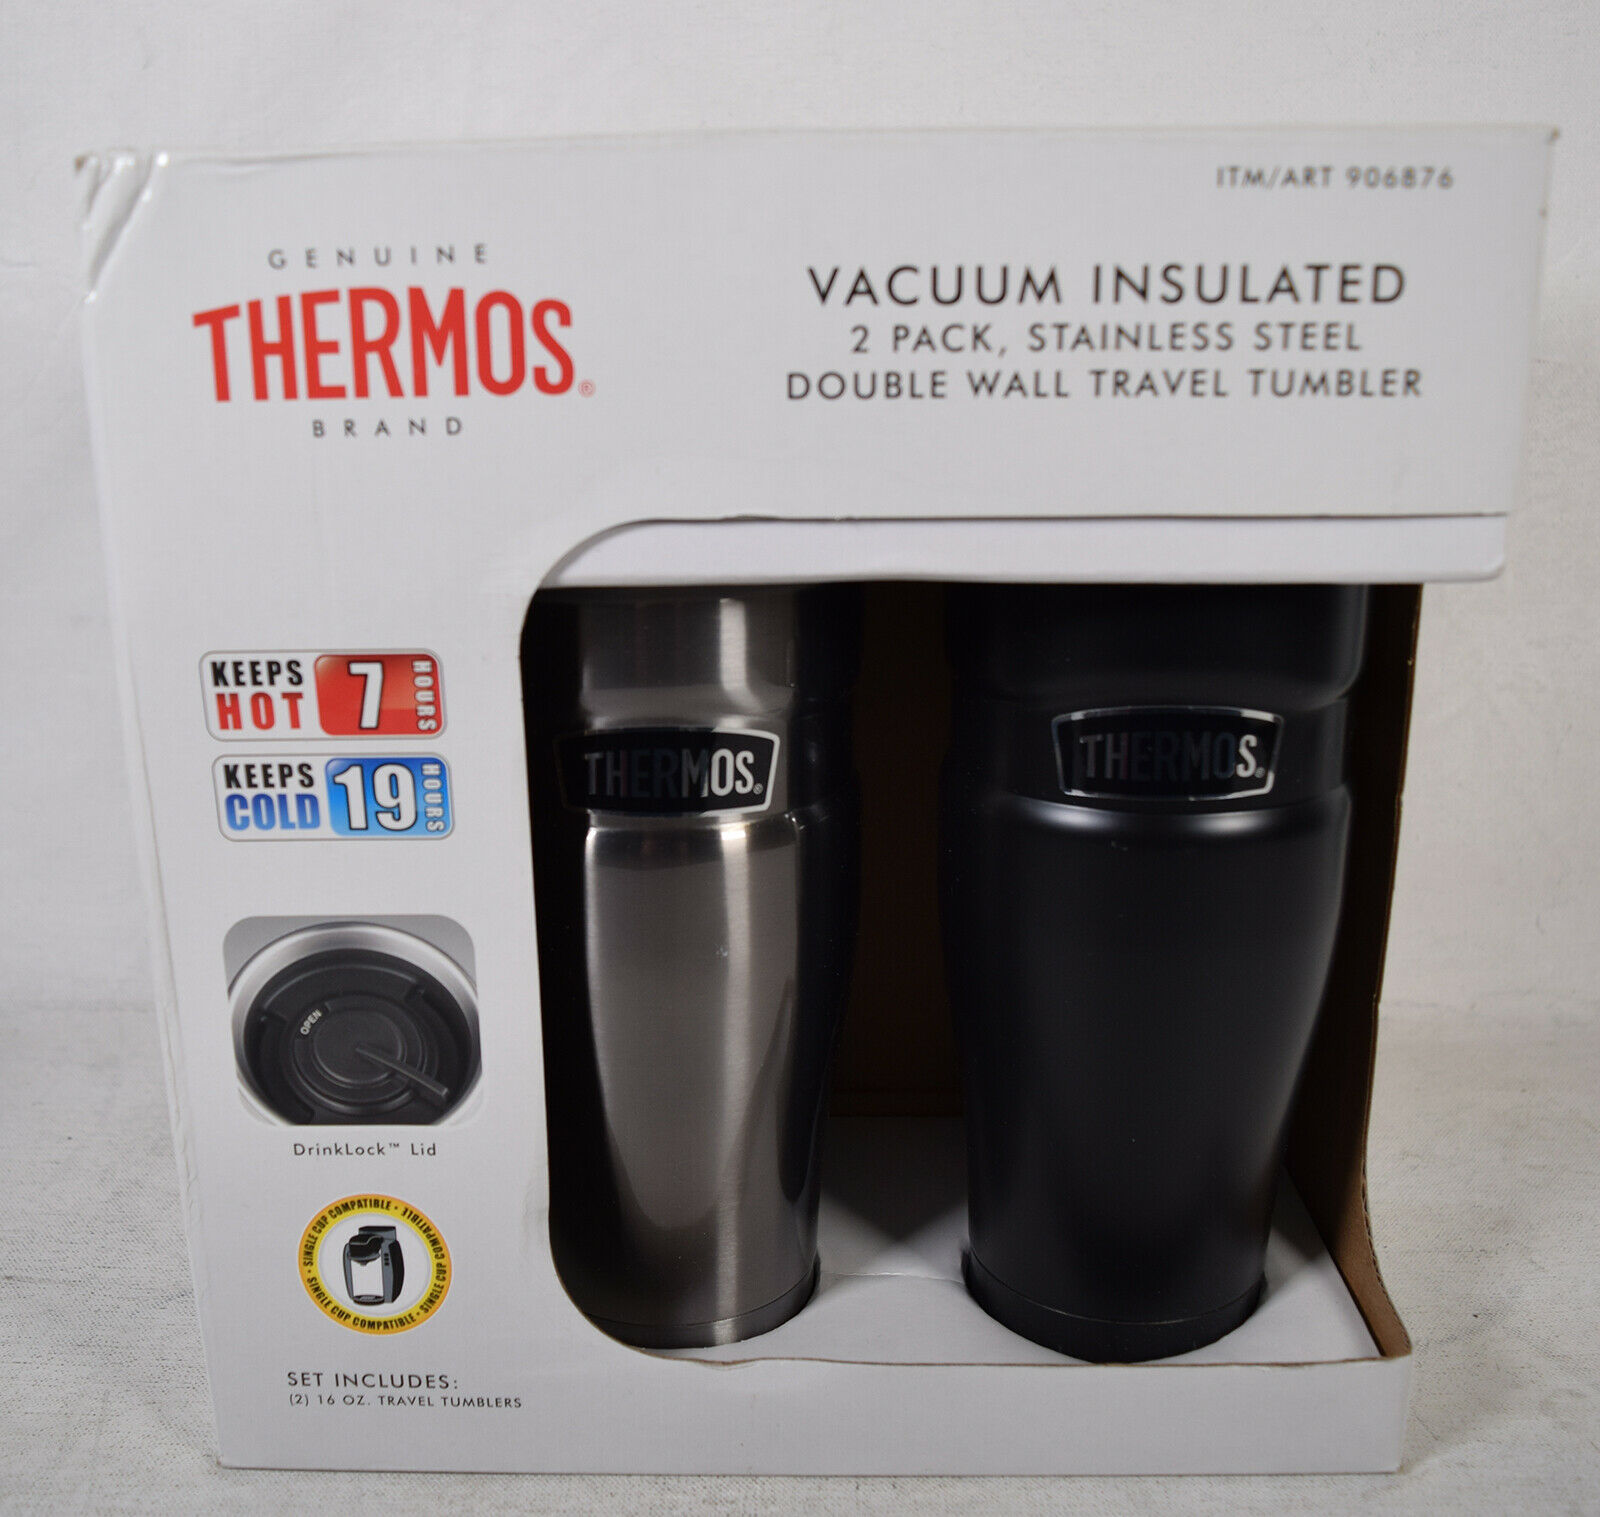 Primary image for Thermos 16 oz Vacuum Insulated Stainless Steel 2 Pack Travel Tumbler Drink